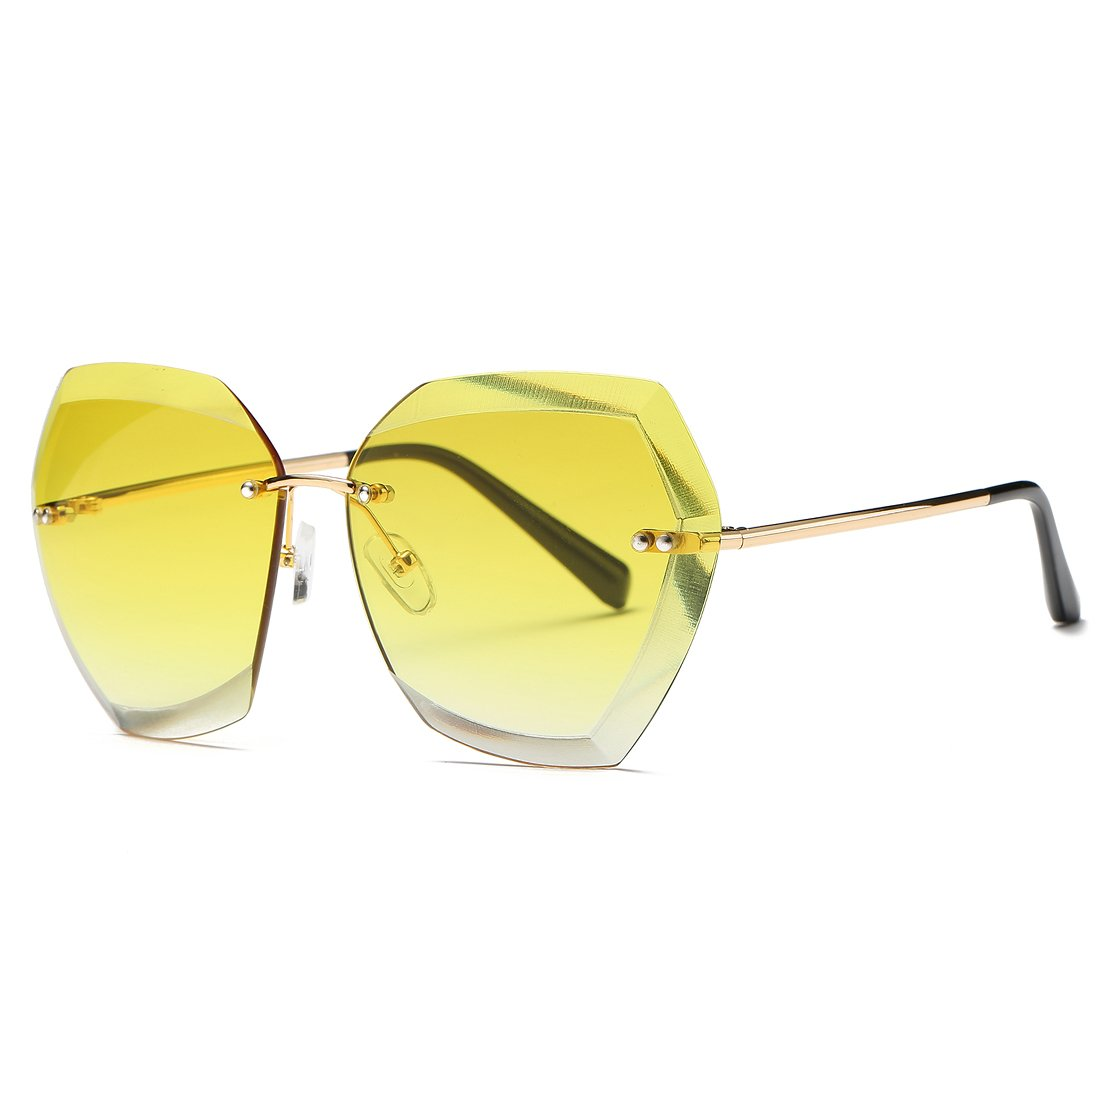 Kimorn Sunglasses Women Oversized Rimless Diamond Cutting Lens Sun Glasses k0534 k0534~2